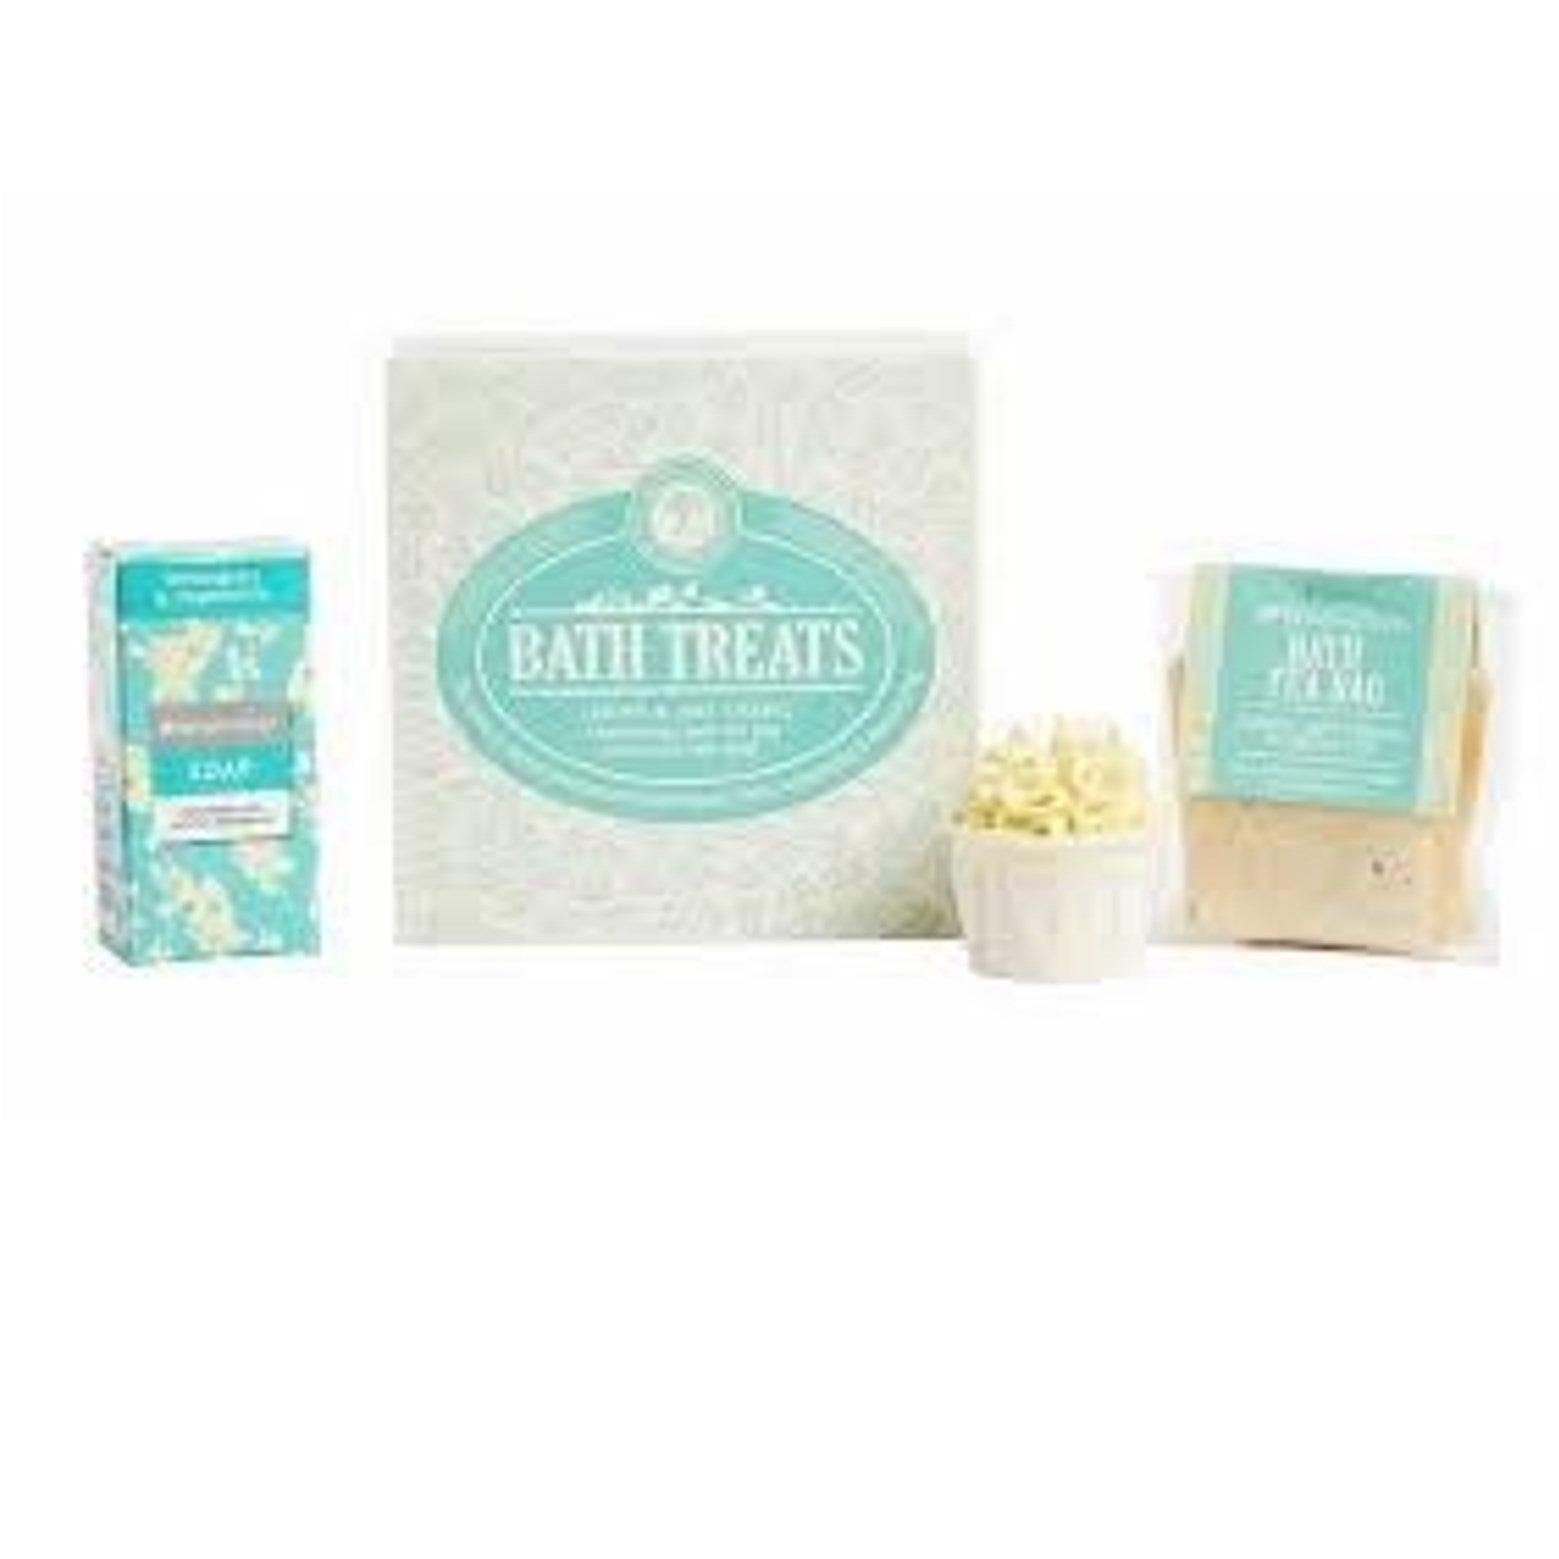 Bath Treats- Lemon & May Chang